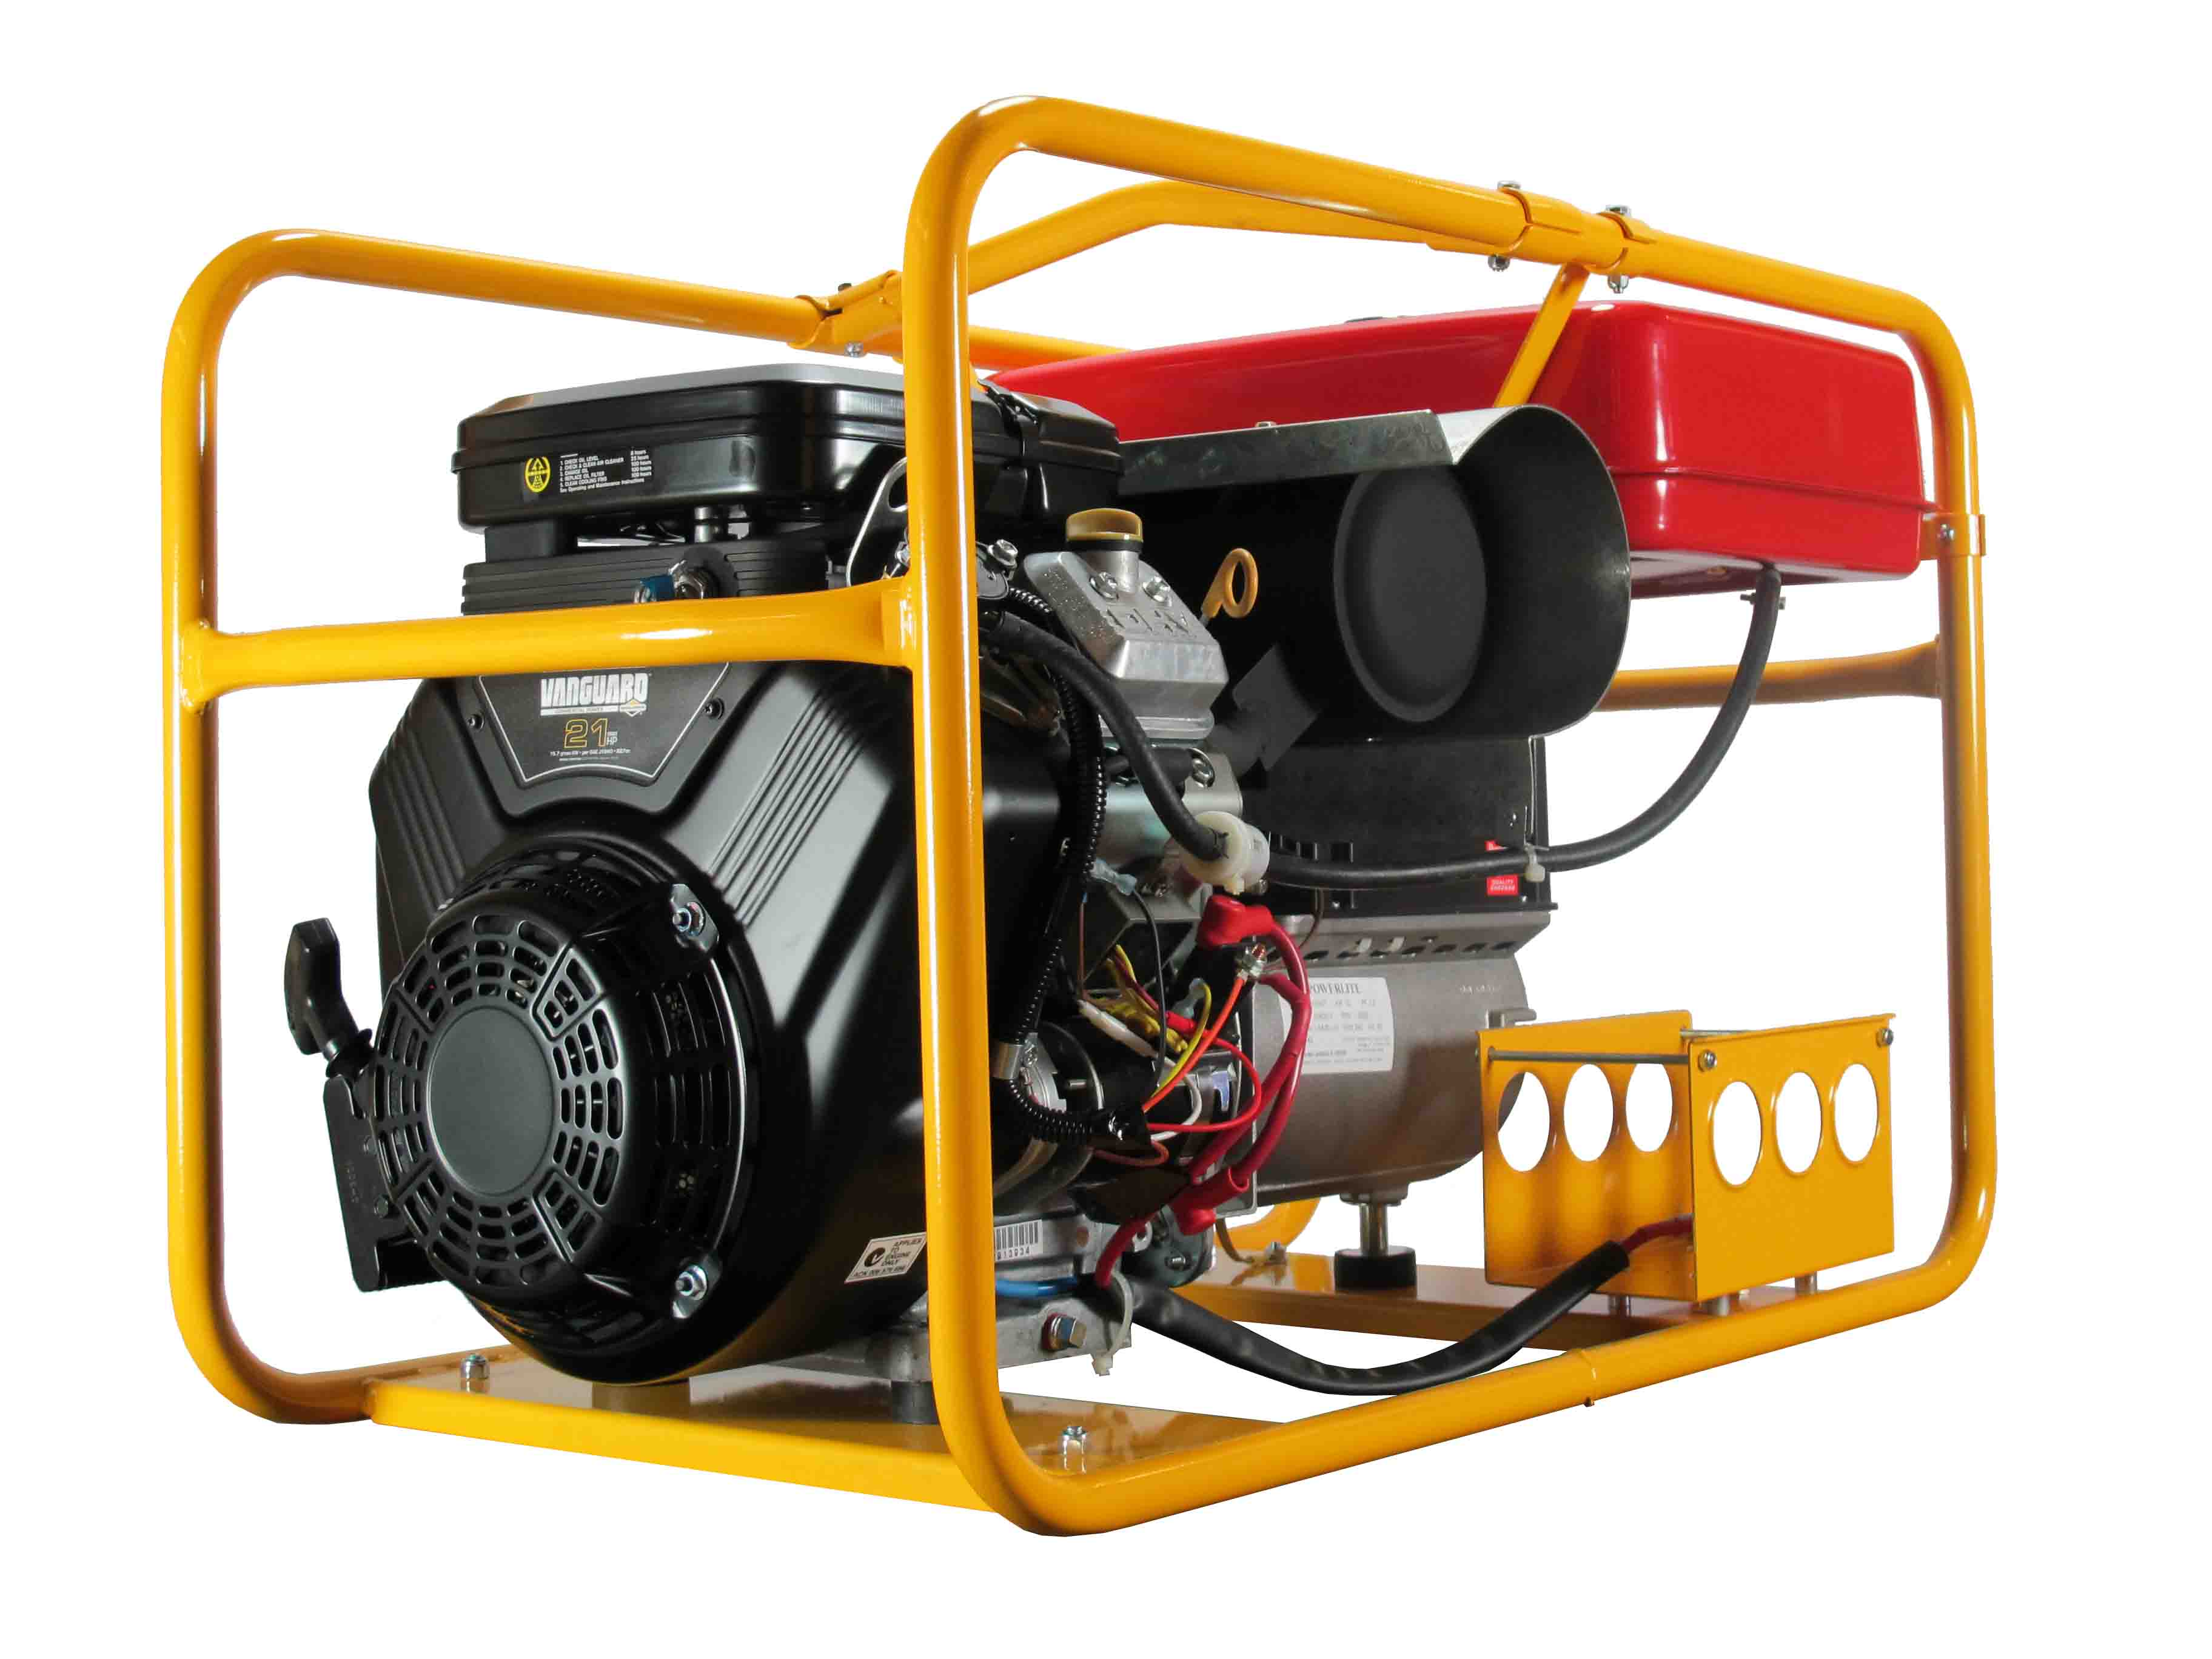 PB120ET – 10 000W Generator with battery